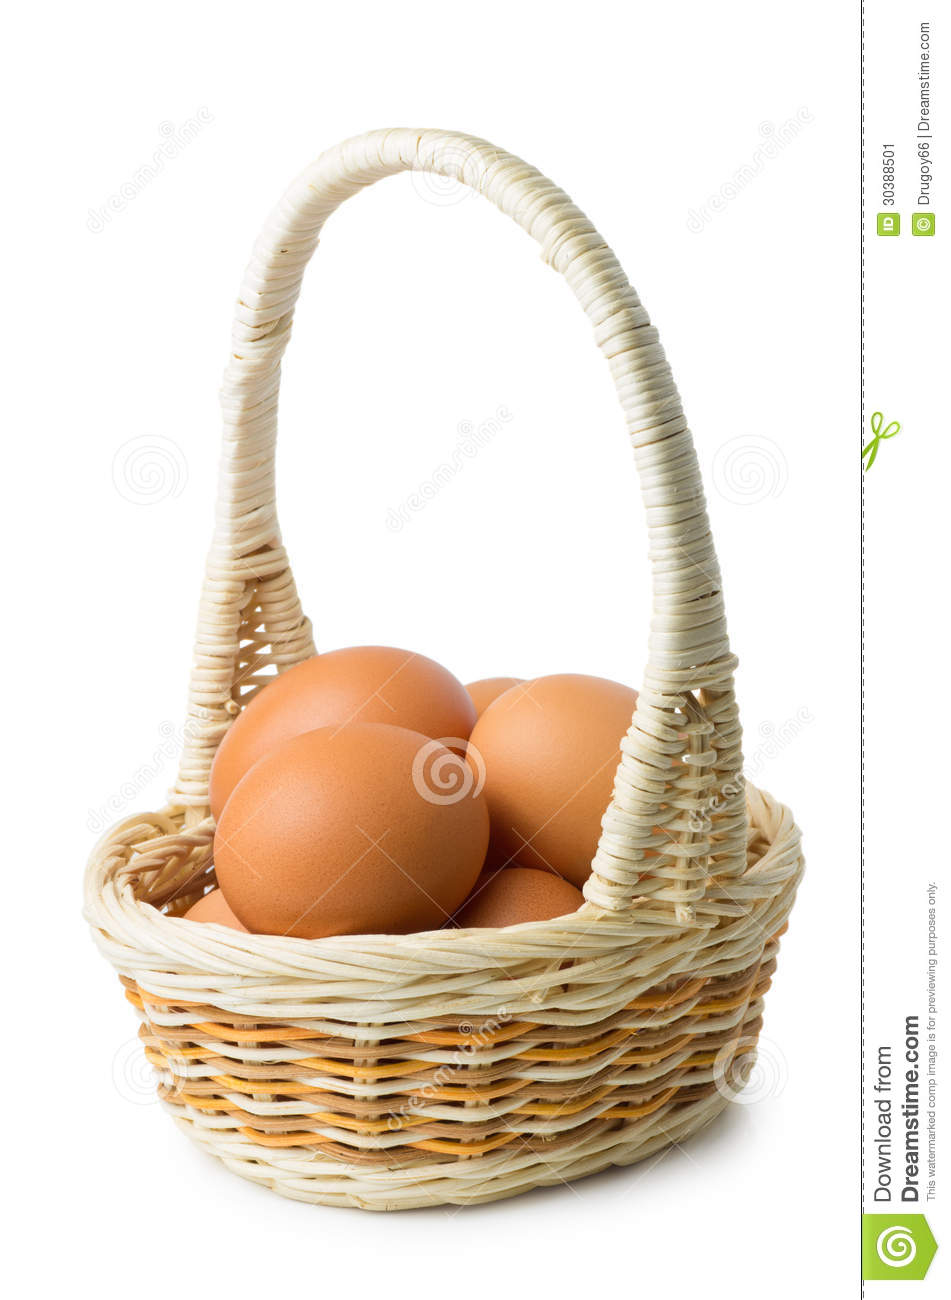 White wicker baskets with handle - Brown Eggs In Wicker Basket With Long Handle